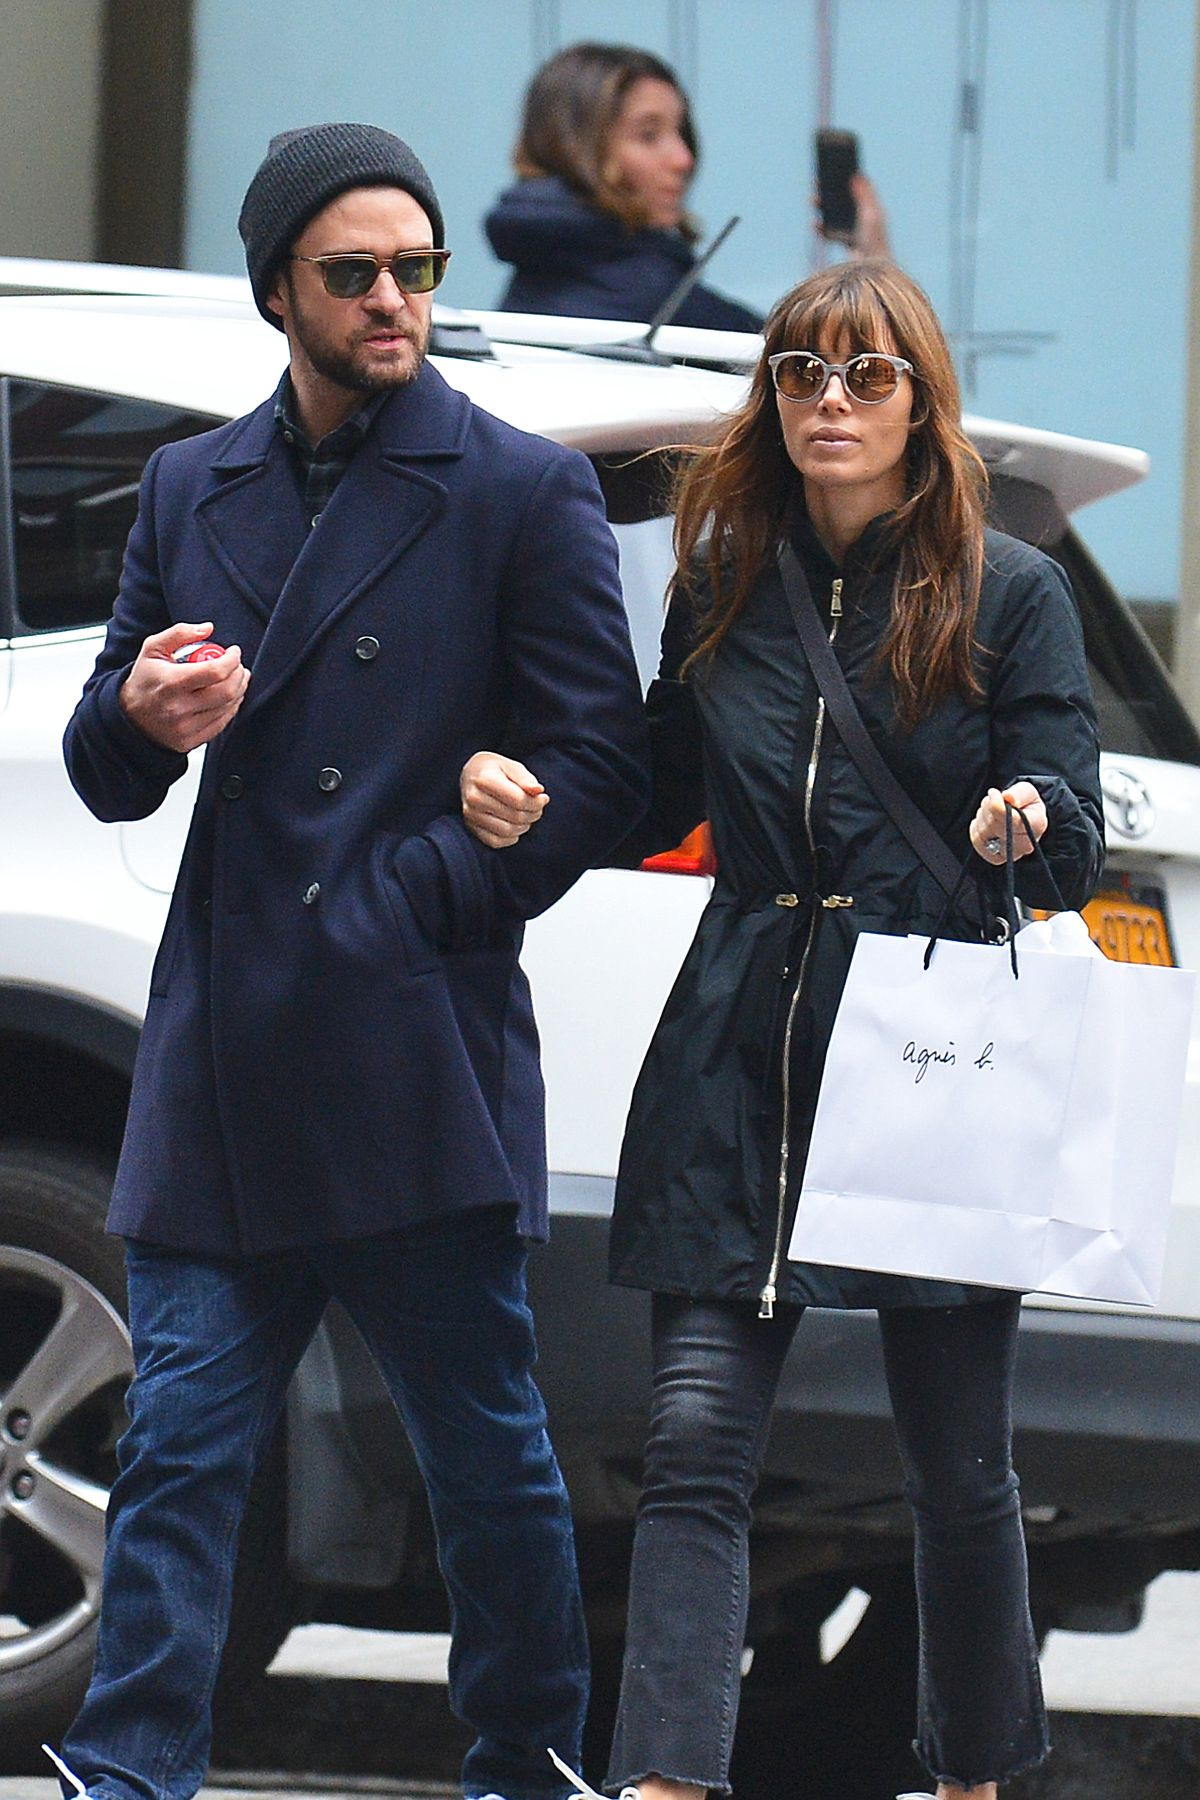 JESSICA BIEL and Justin Timberlake Out Shopping in New York 11/26/2016